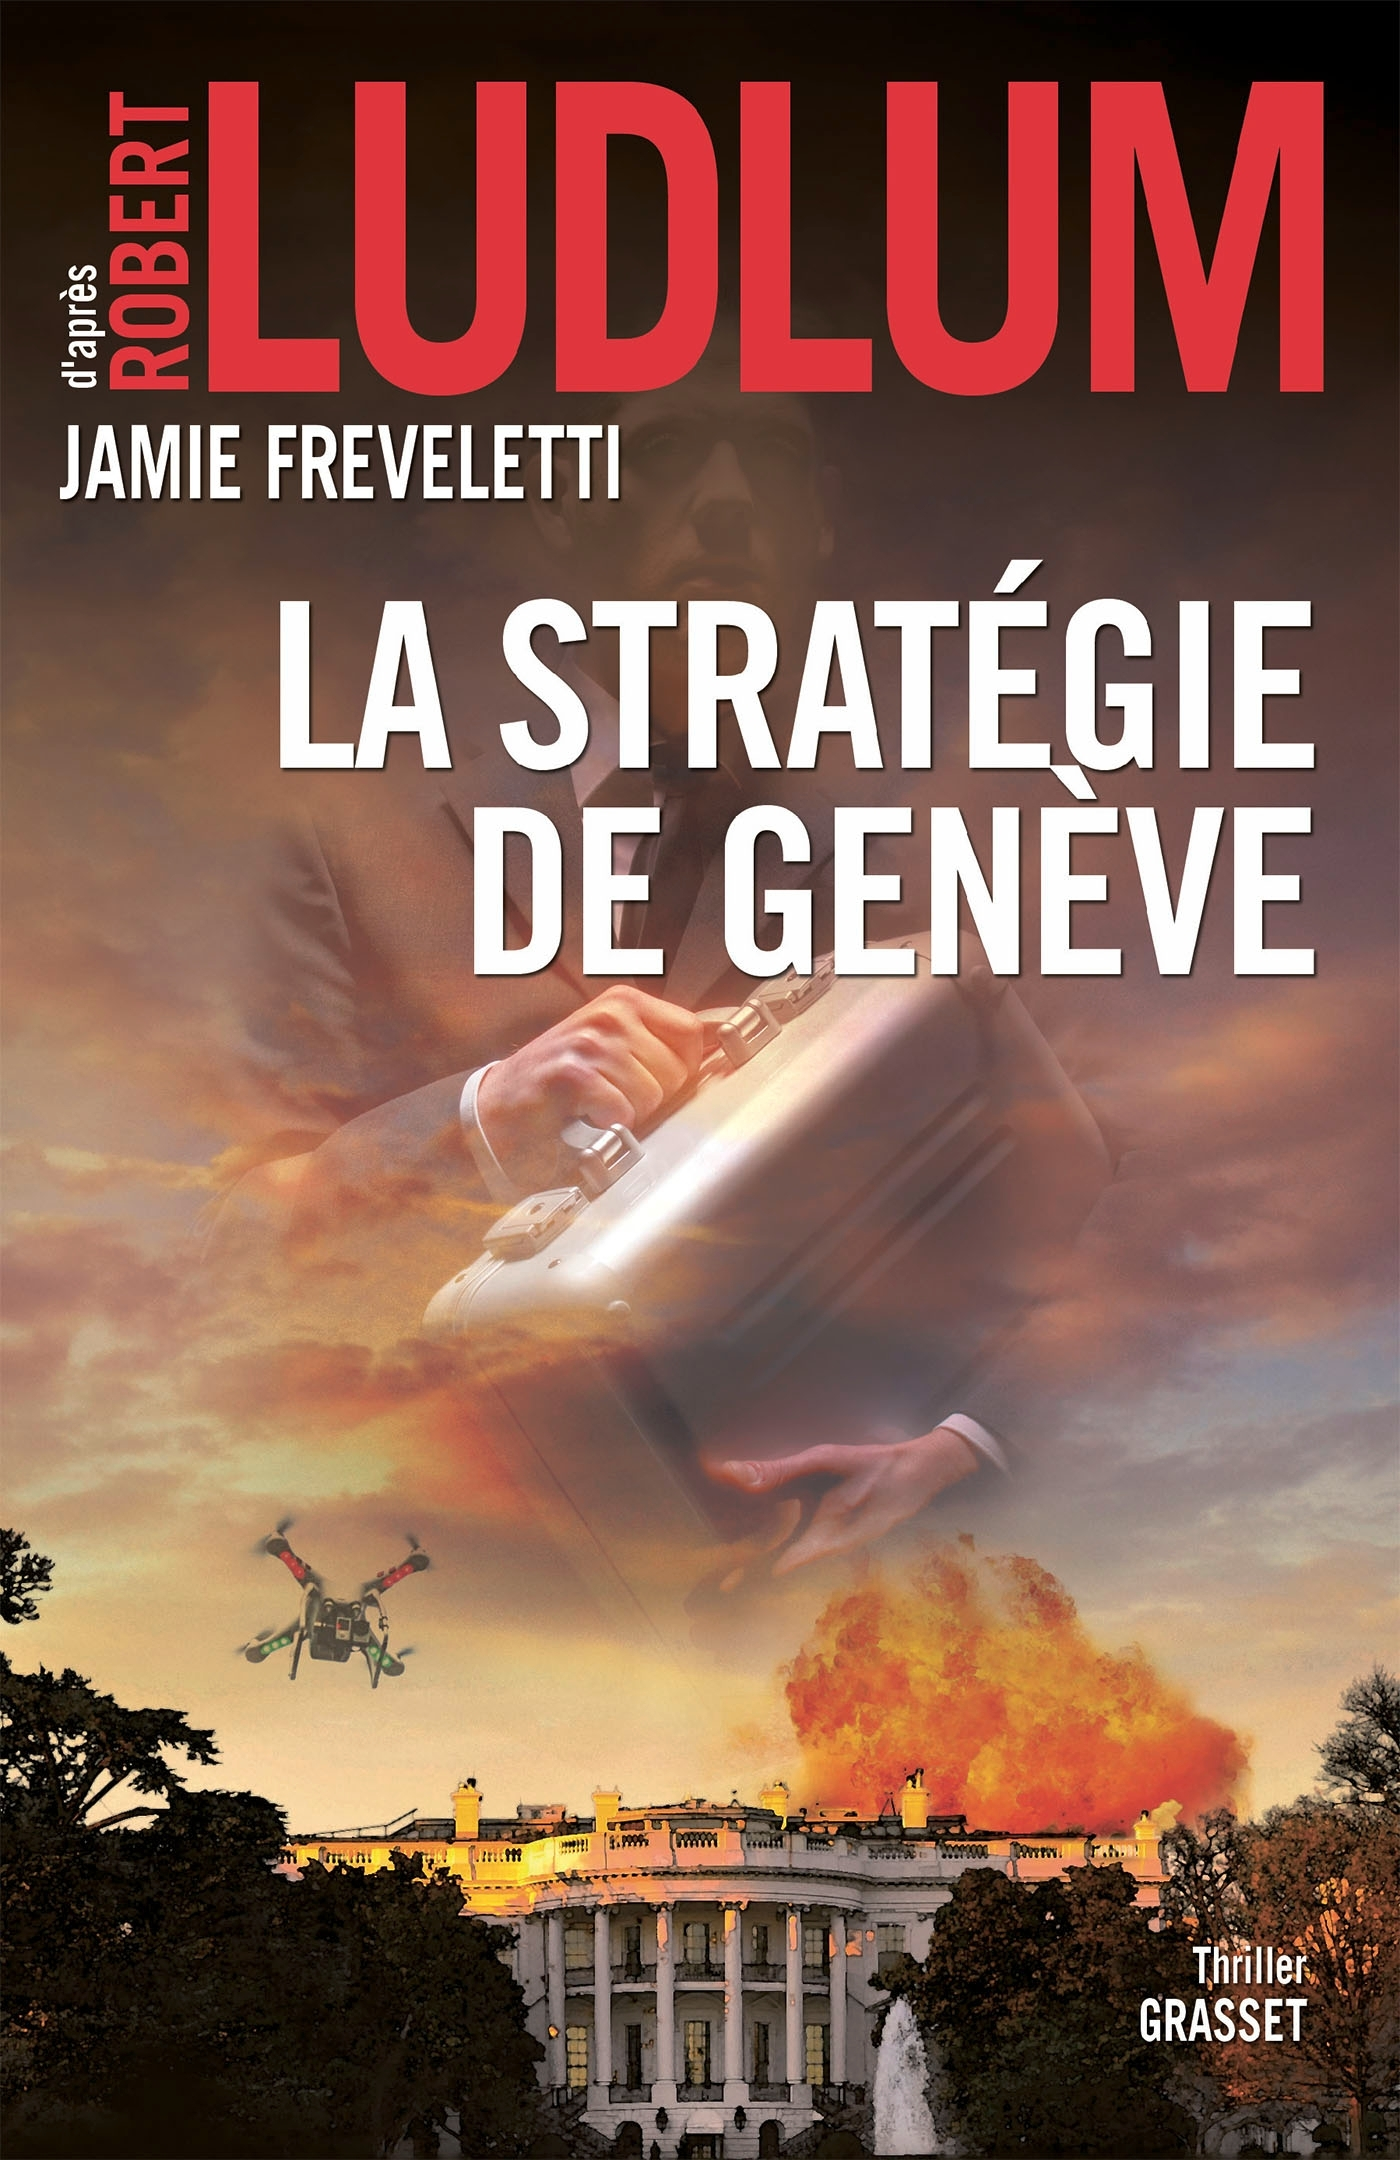 LA STRATEGIE DE GENEVE